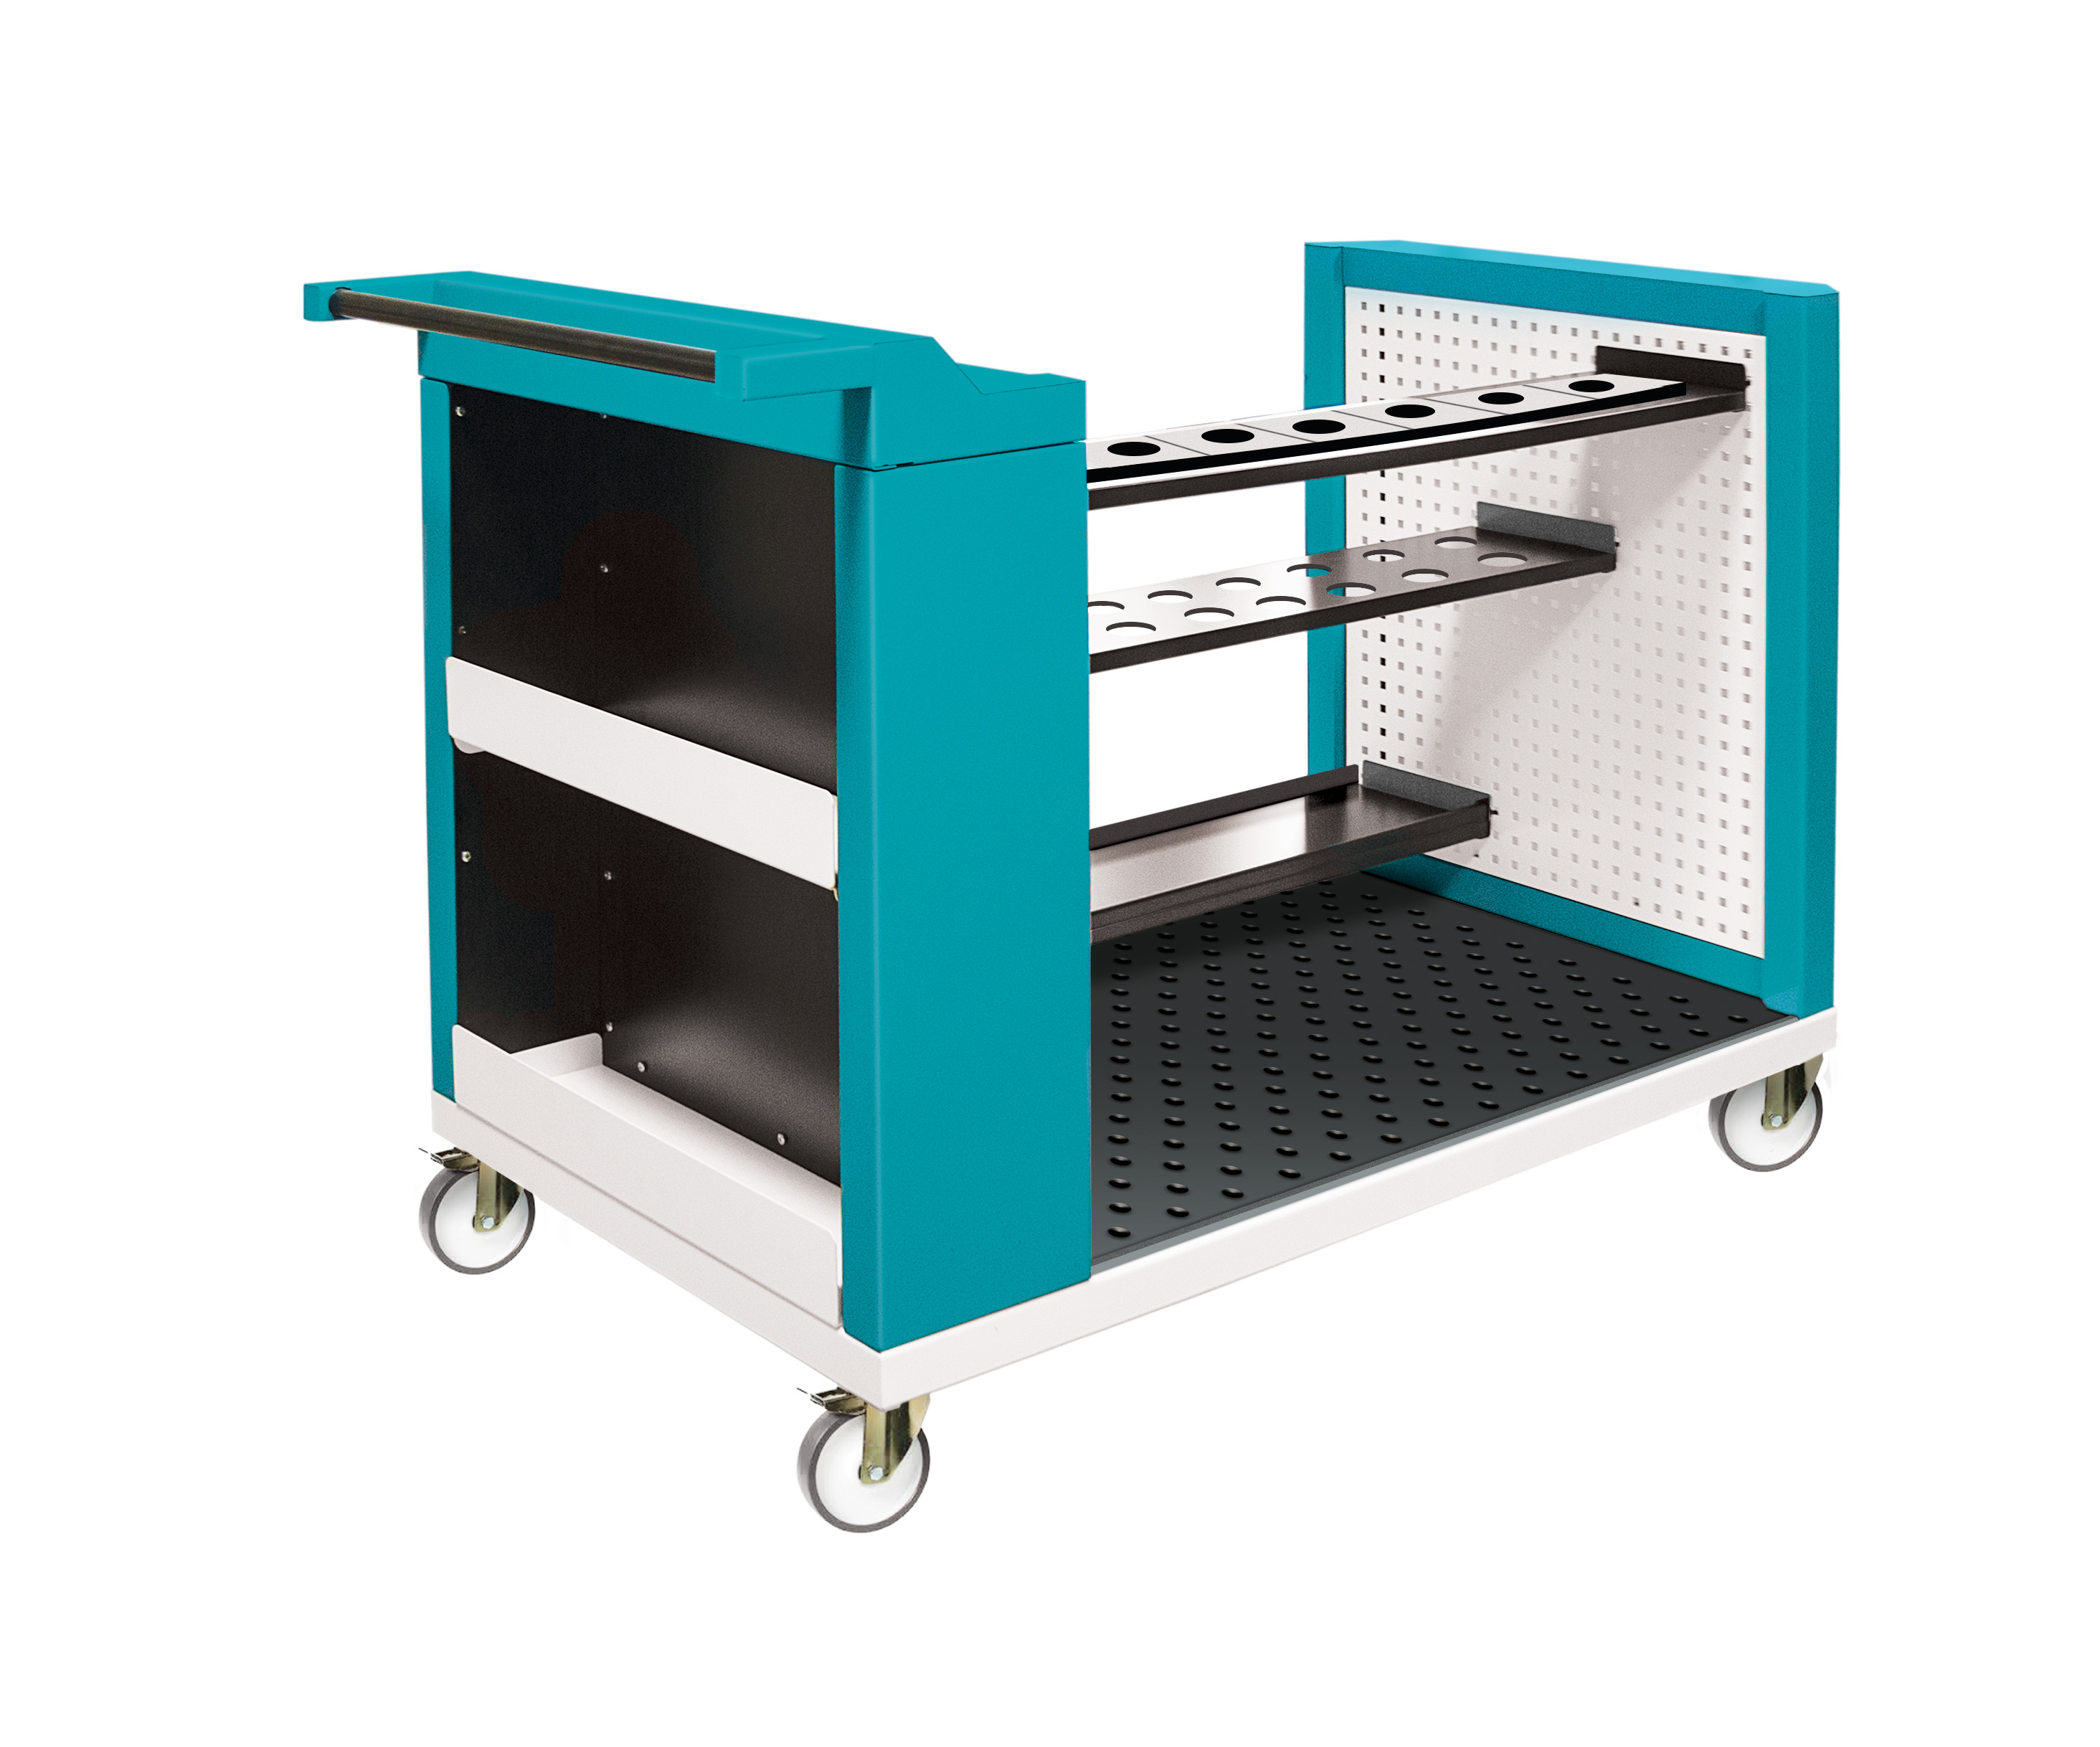 HEAVY DUTY WORKBENCHES SERIES TITAN